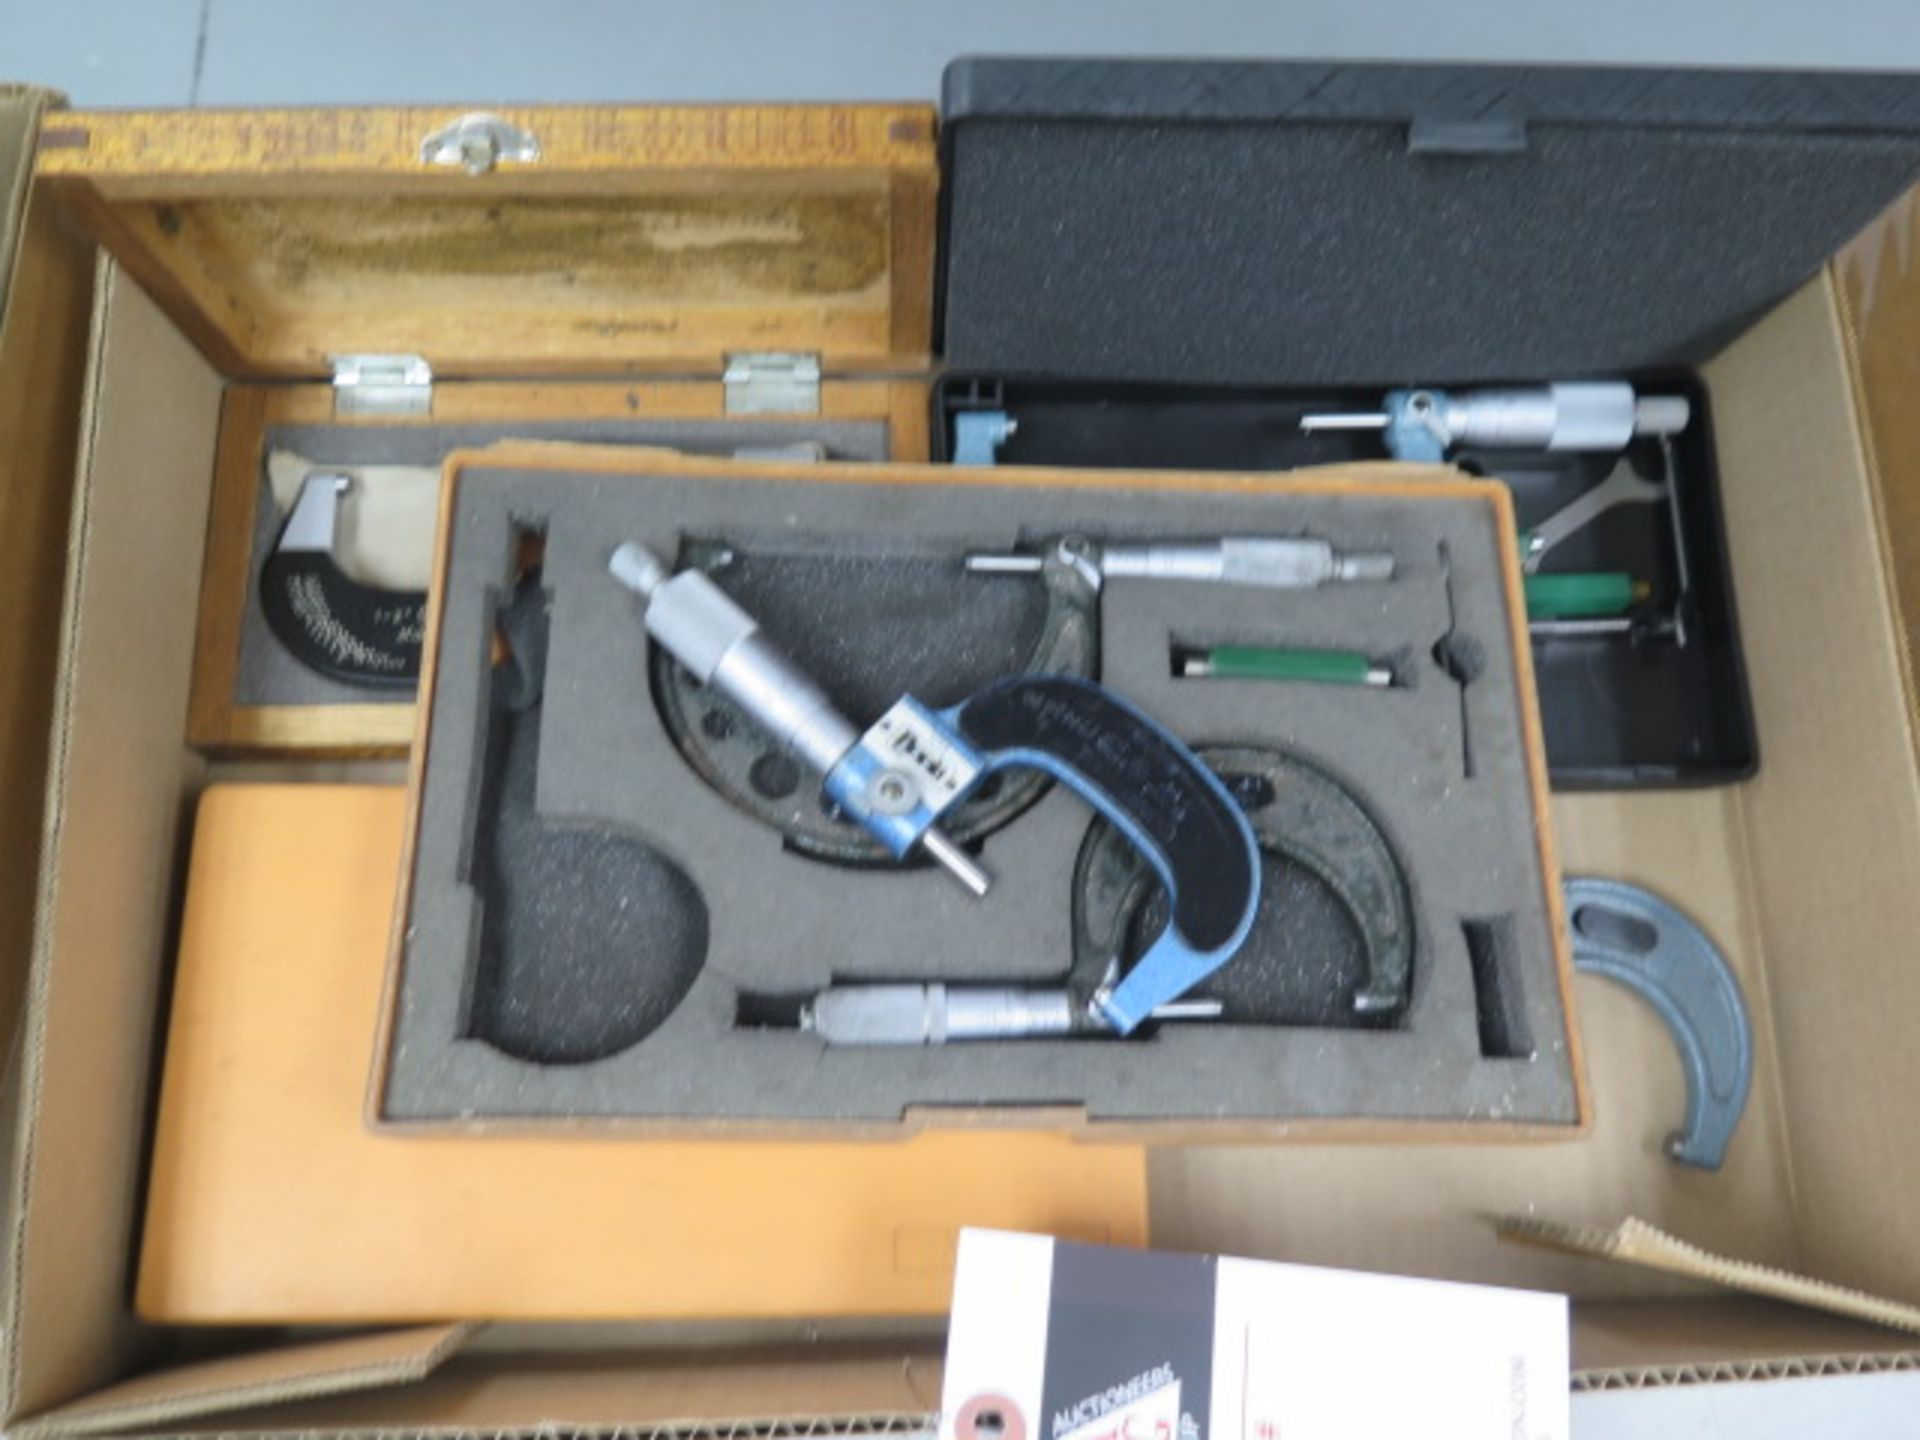 Mitutoyo OD Mics (7) (SOLD AS-IS - NO WARRANTY) - Image 2 of 7